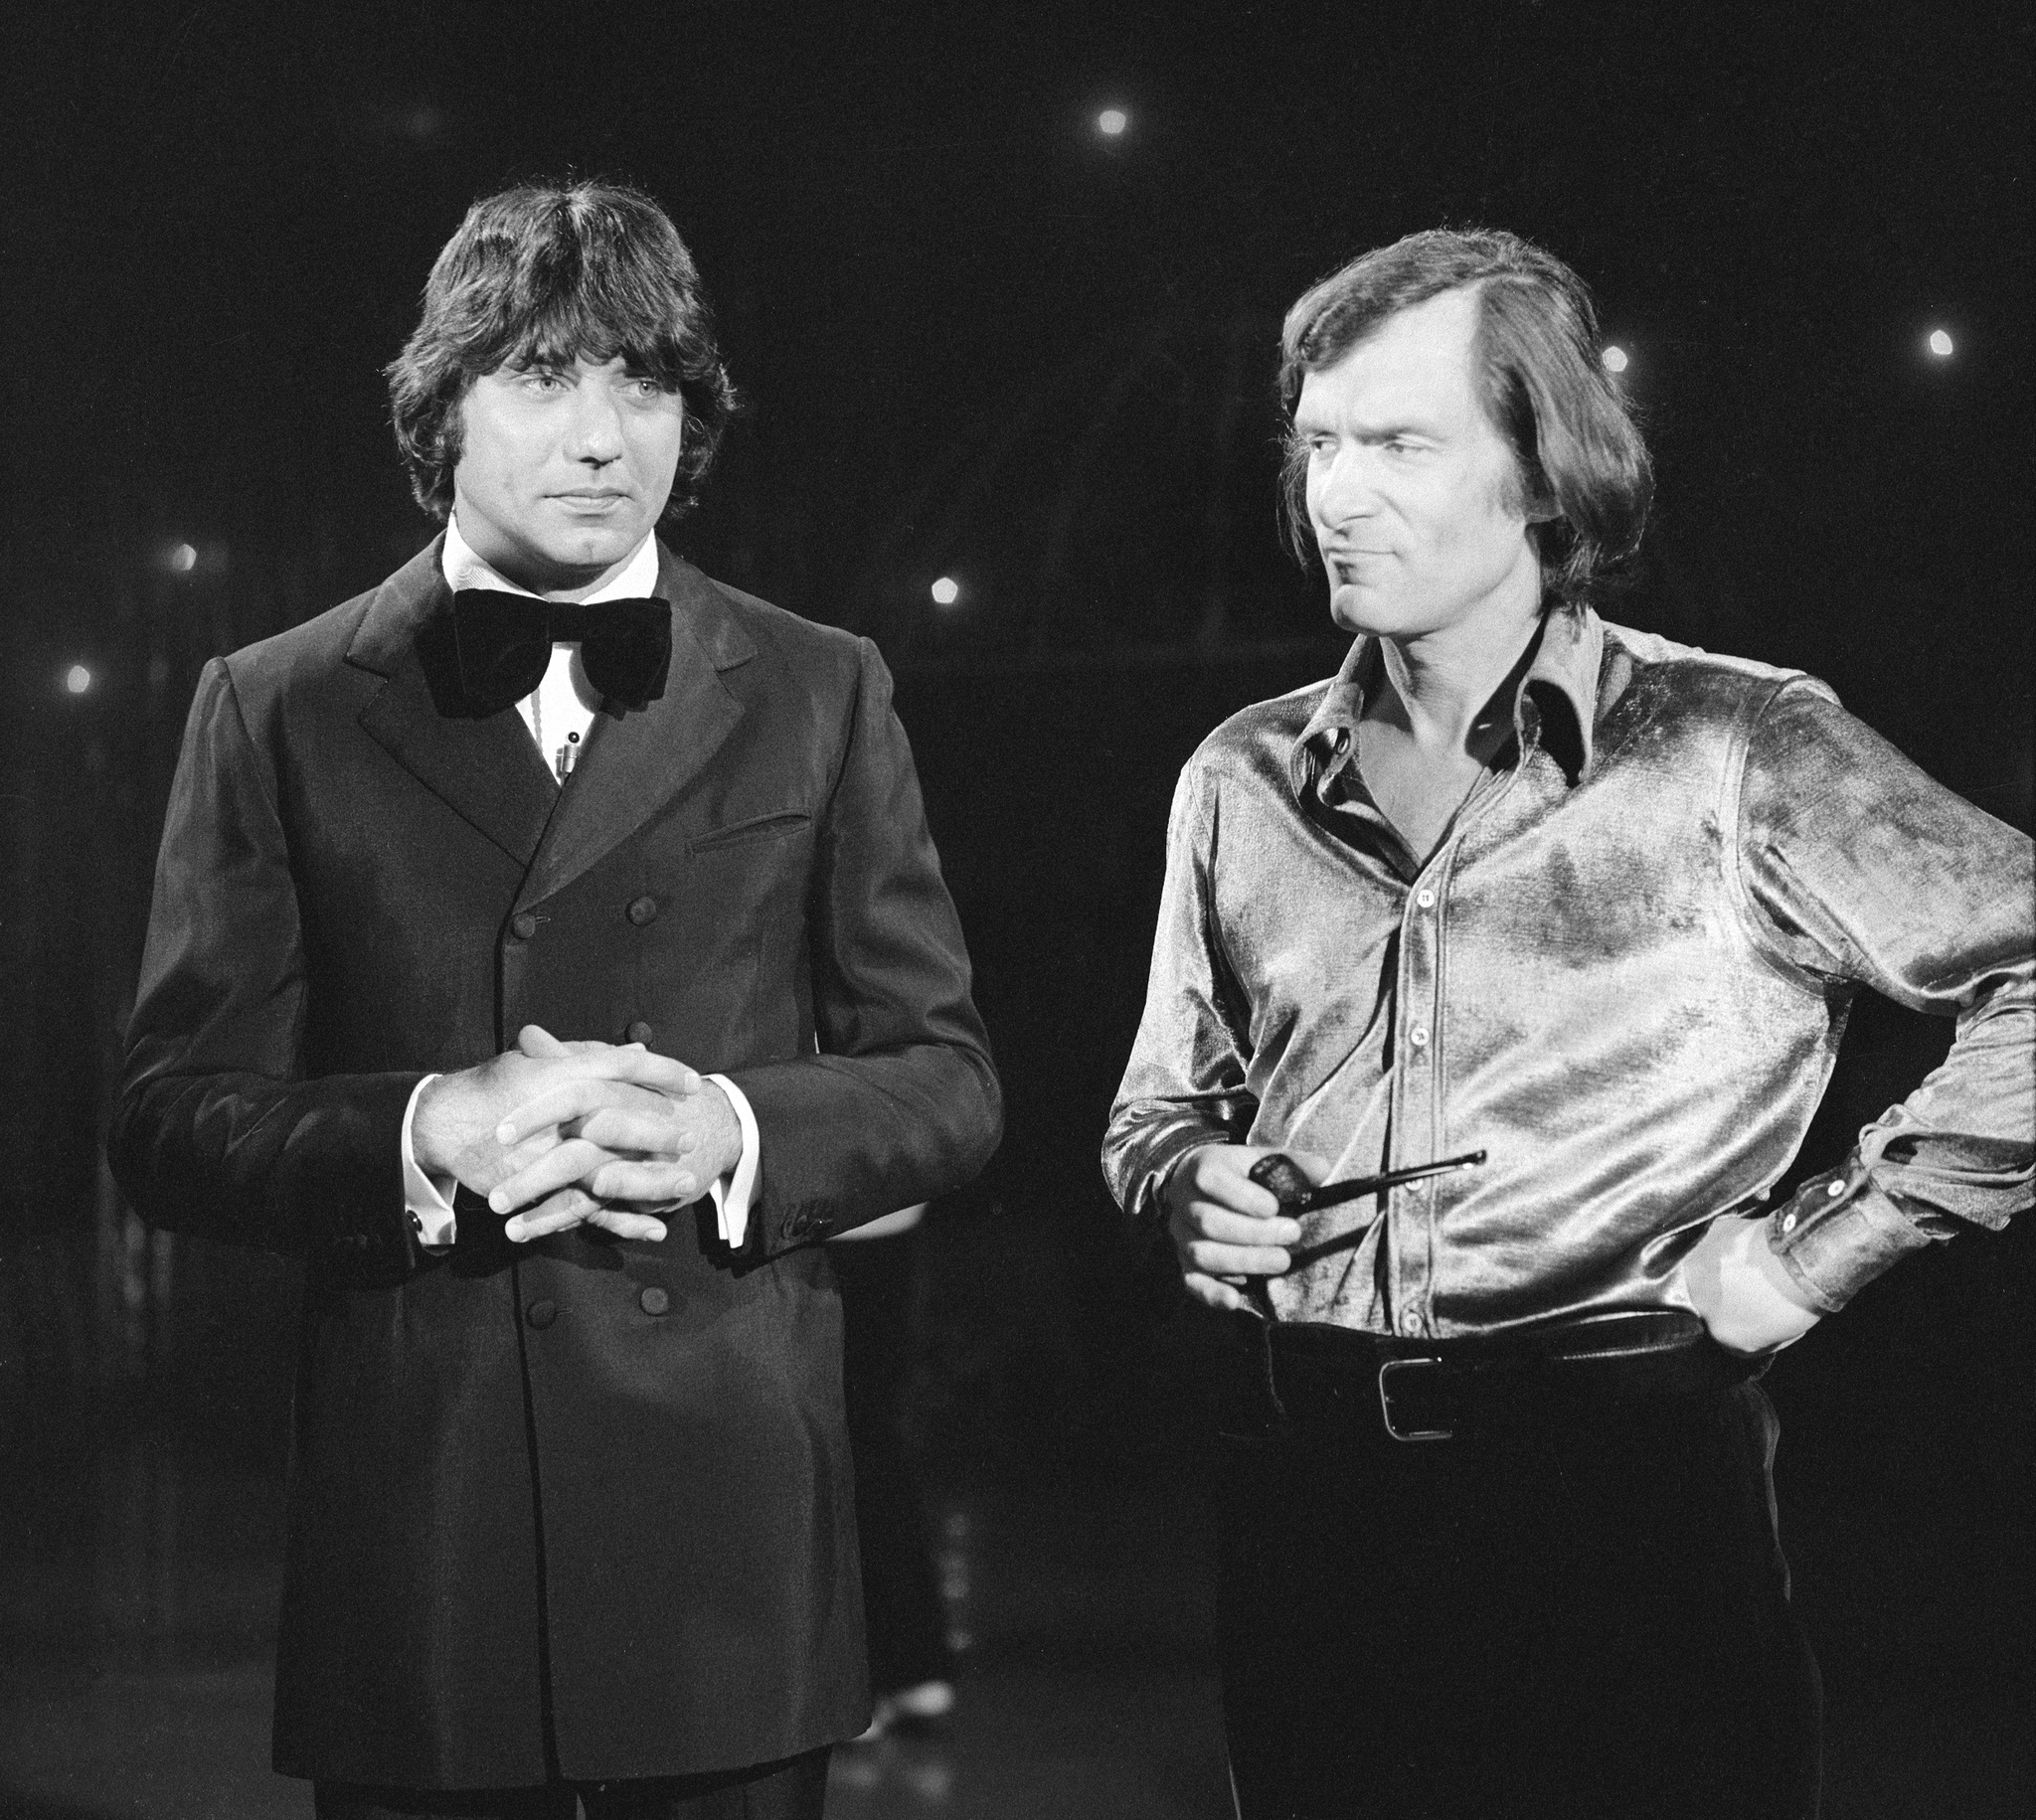 Hugh Hefner and Joe Namath at an event for The Sonny and Cher Comedy Hour (1971)